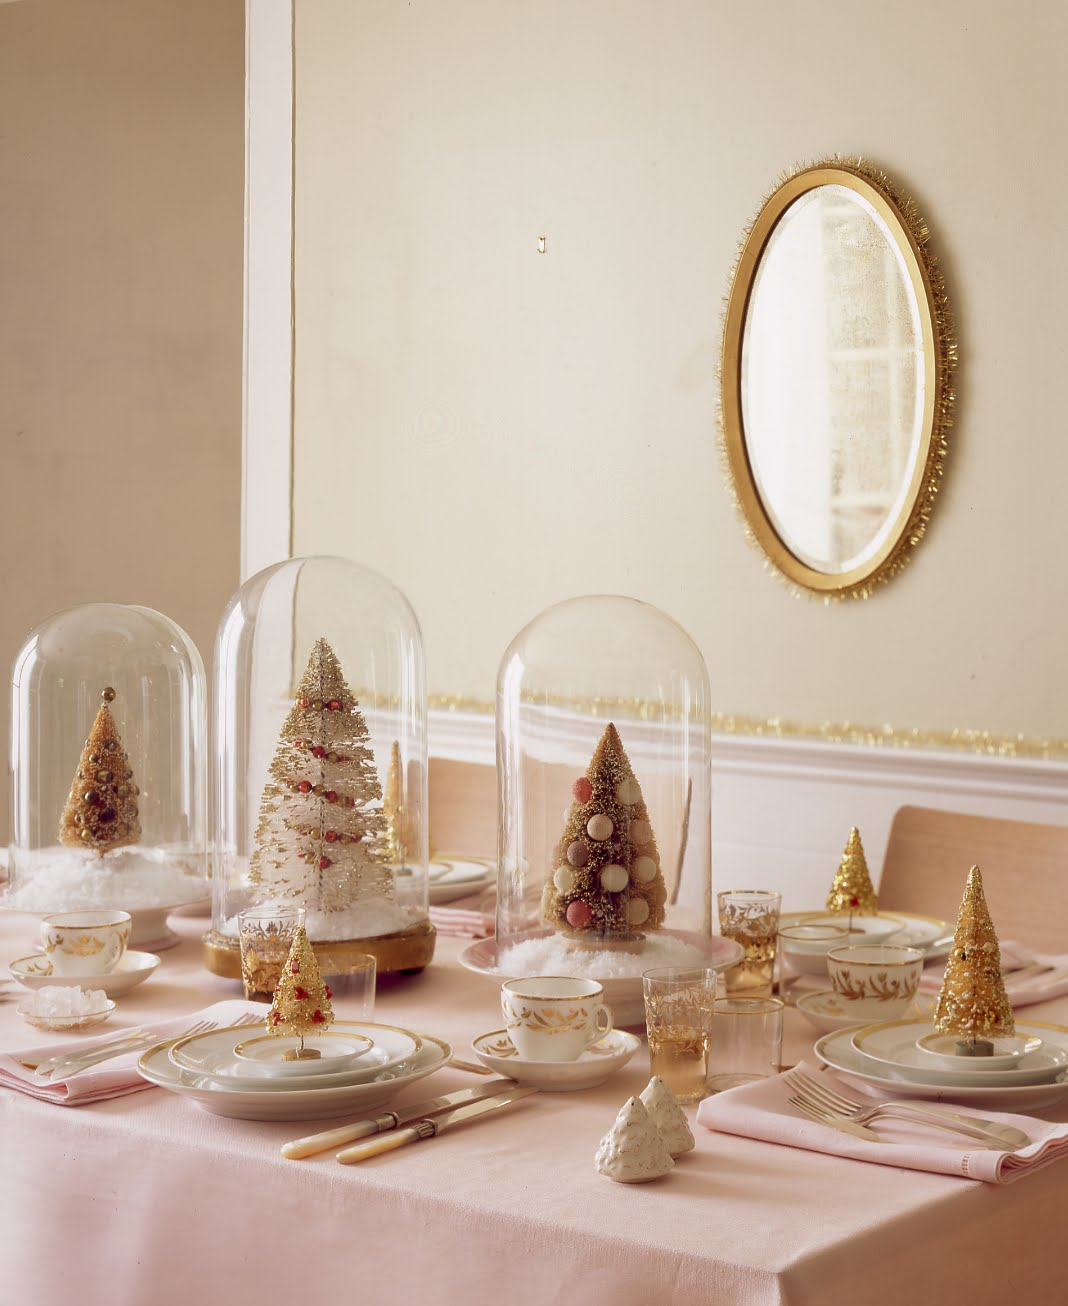 Bad blog about design holiday decorating the dining table - Deco table noel chic ...